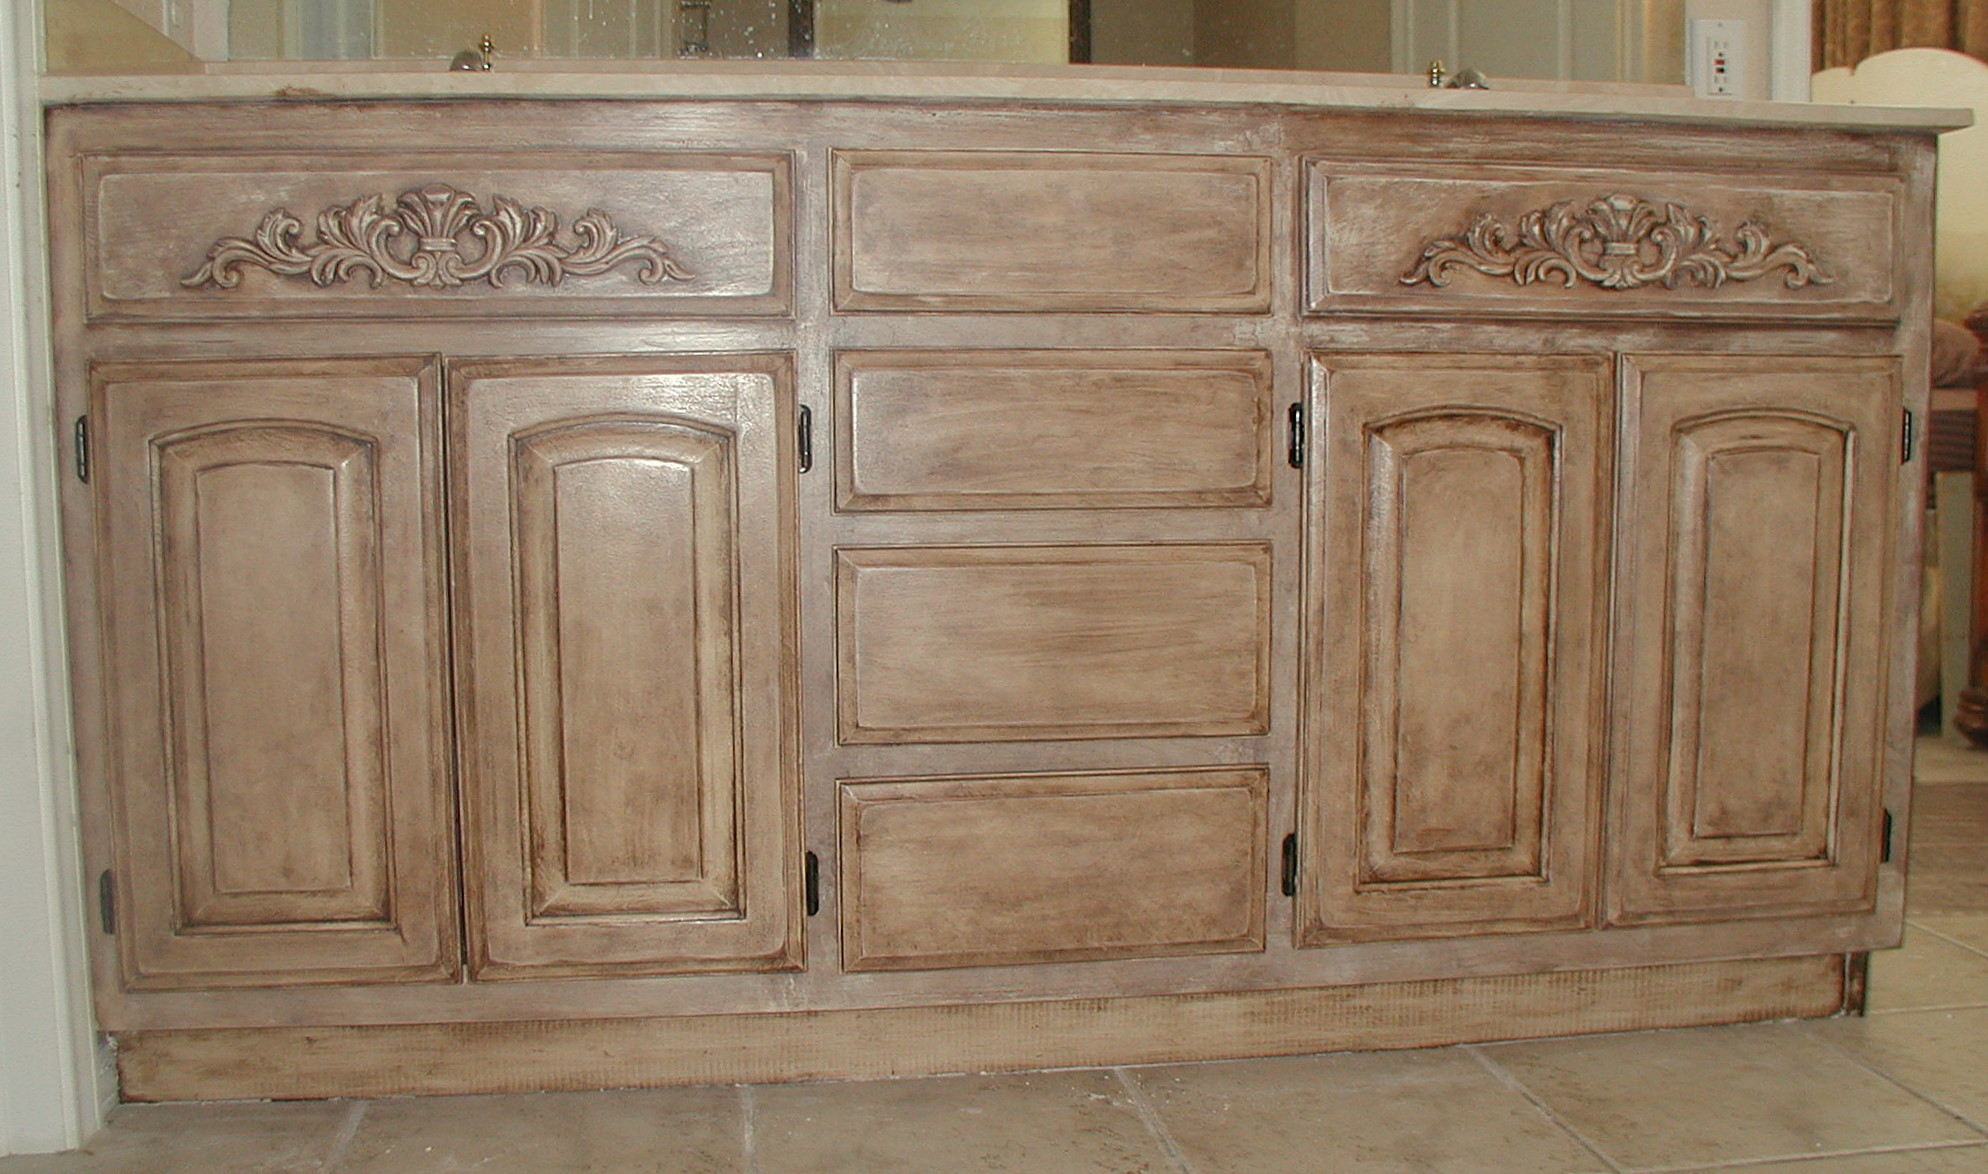 Crackle Paint Kitchen Cabinets Project Transforming Builder Grade Cabinets To Old World